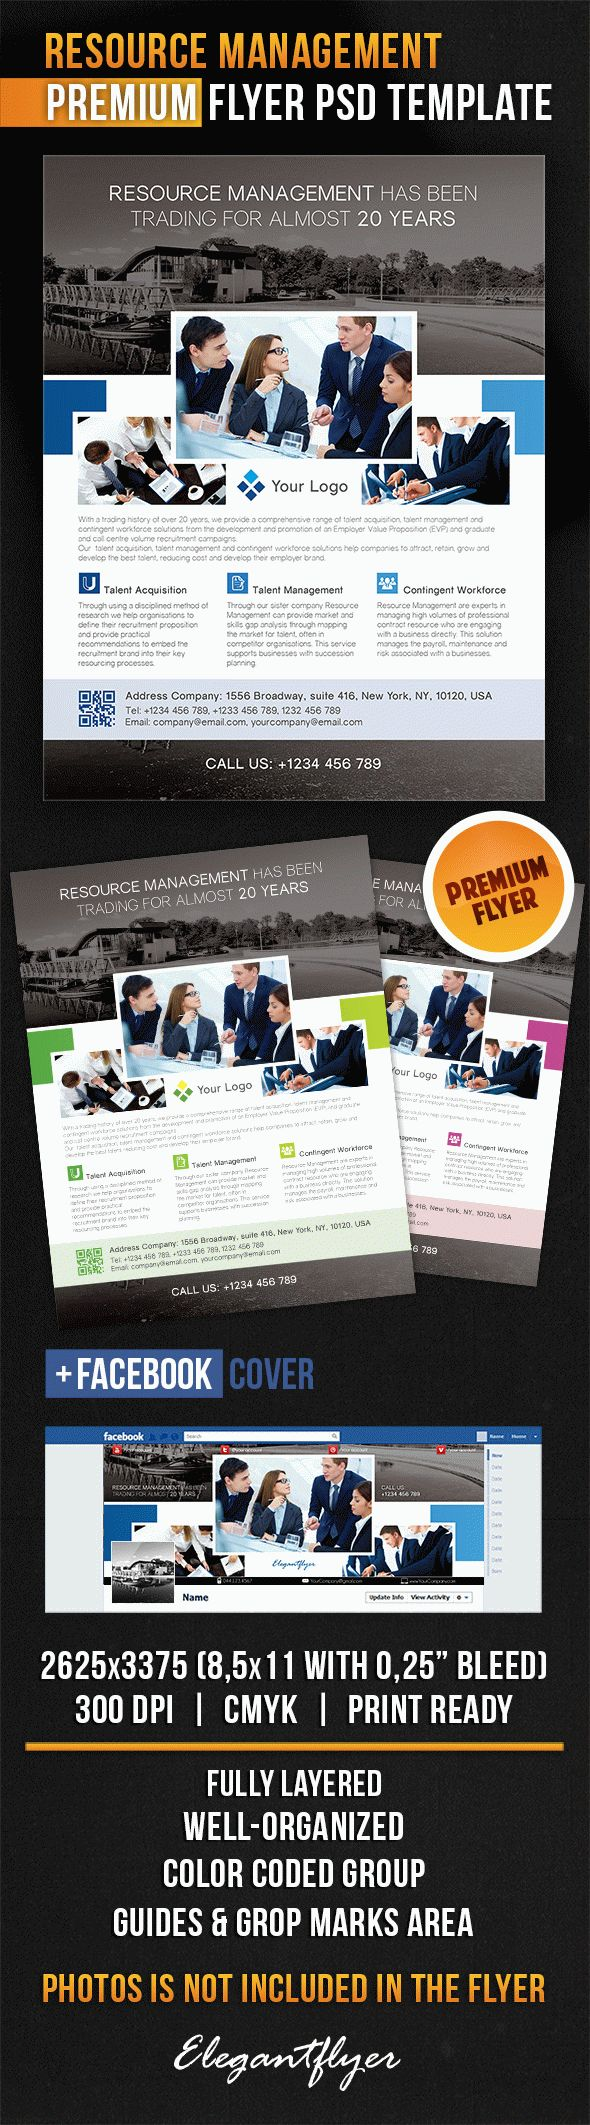 Resource Management – Flyer PSD Template